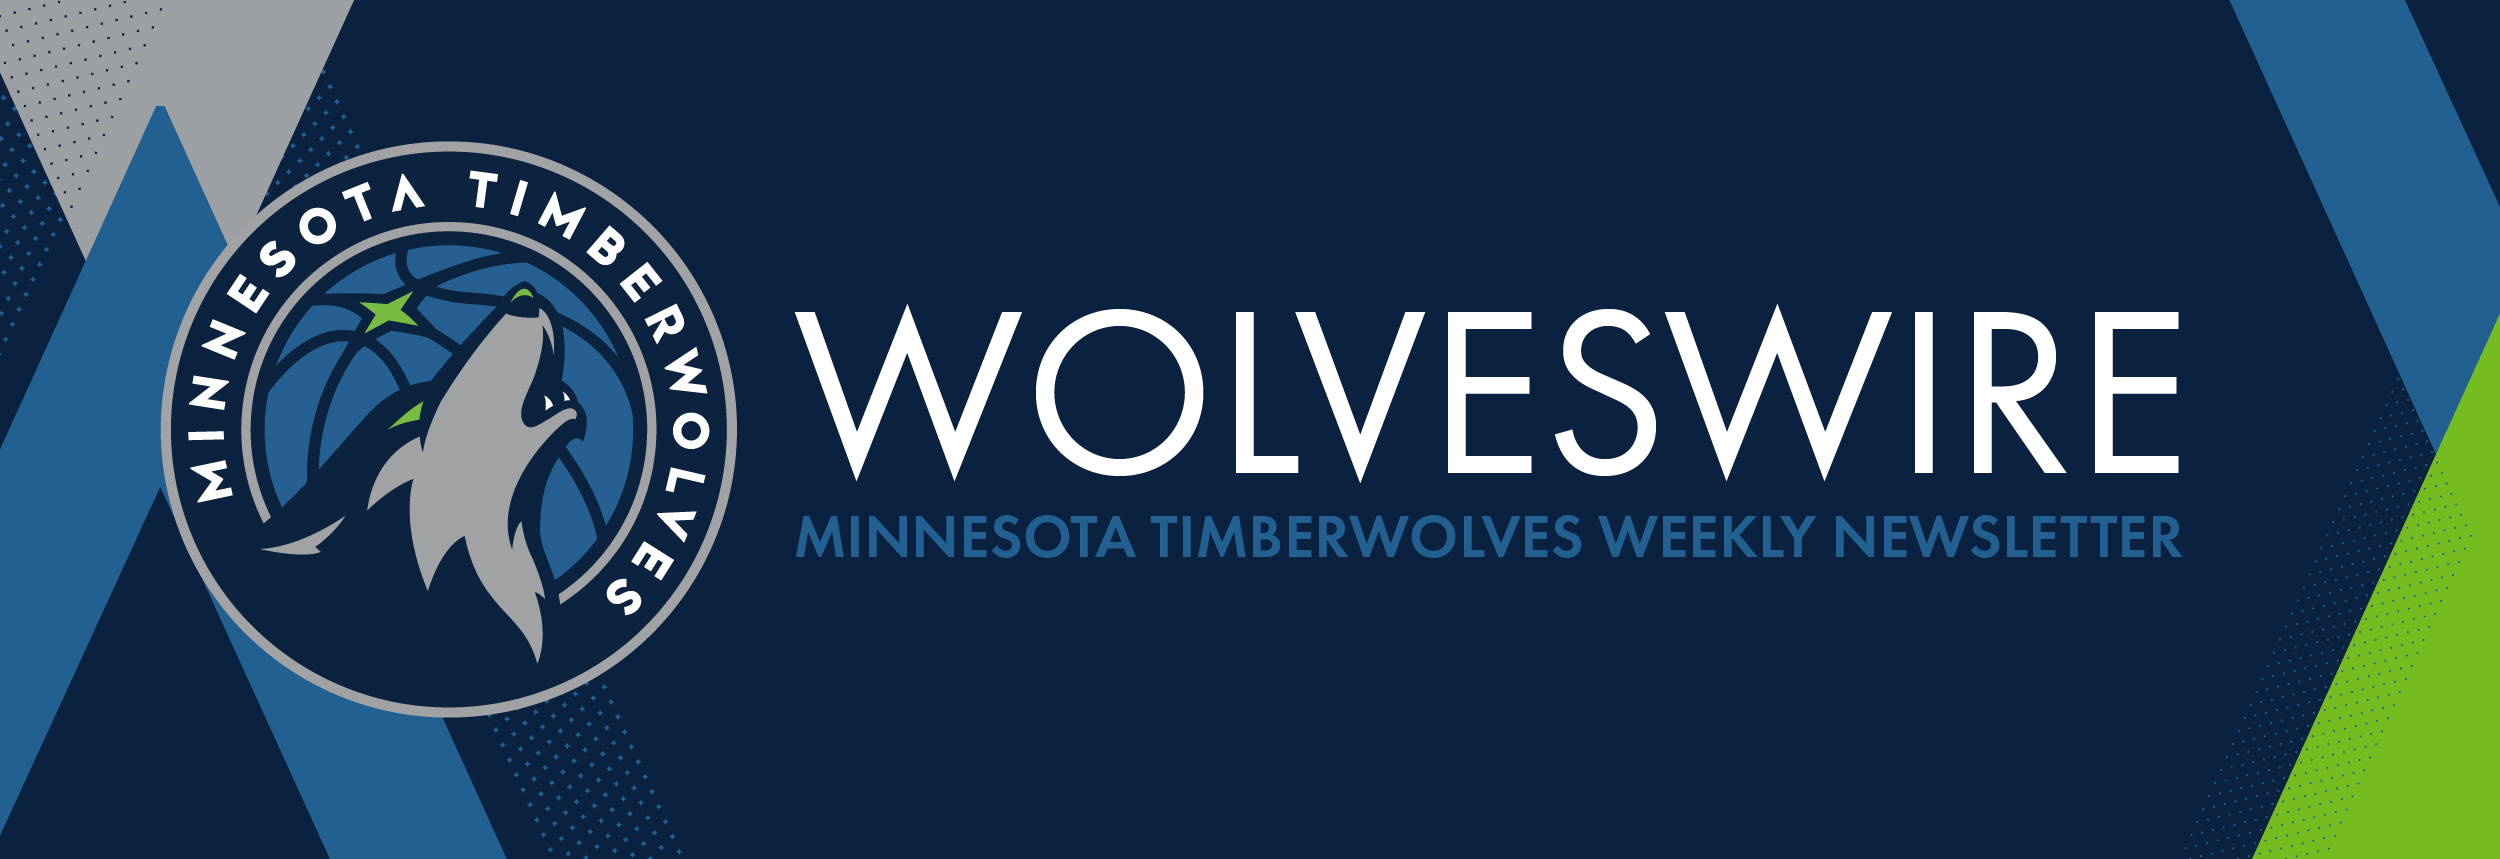 WolvesWire: Minnesota Timberwolves Weekly Newsletter